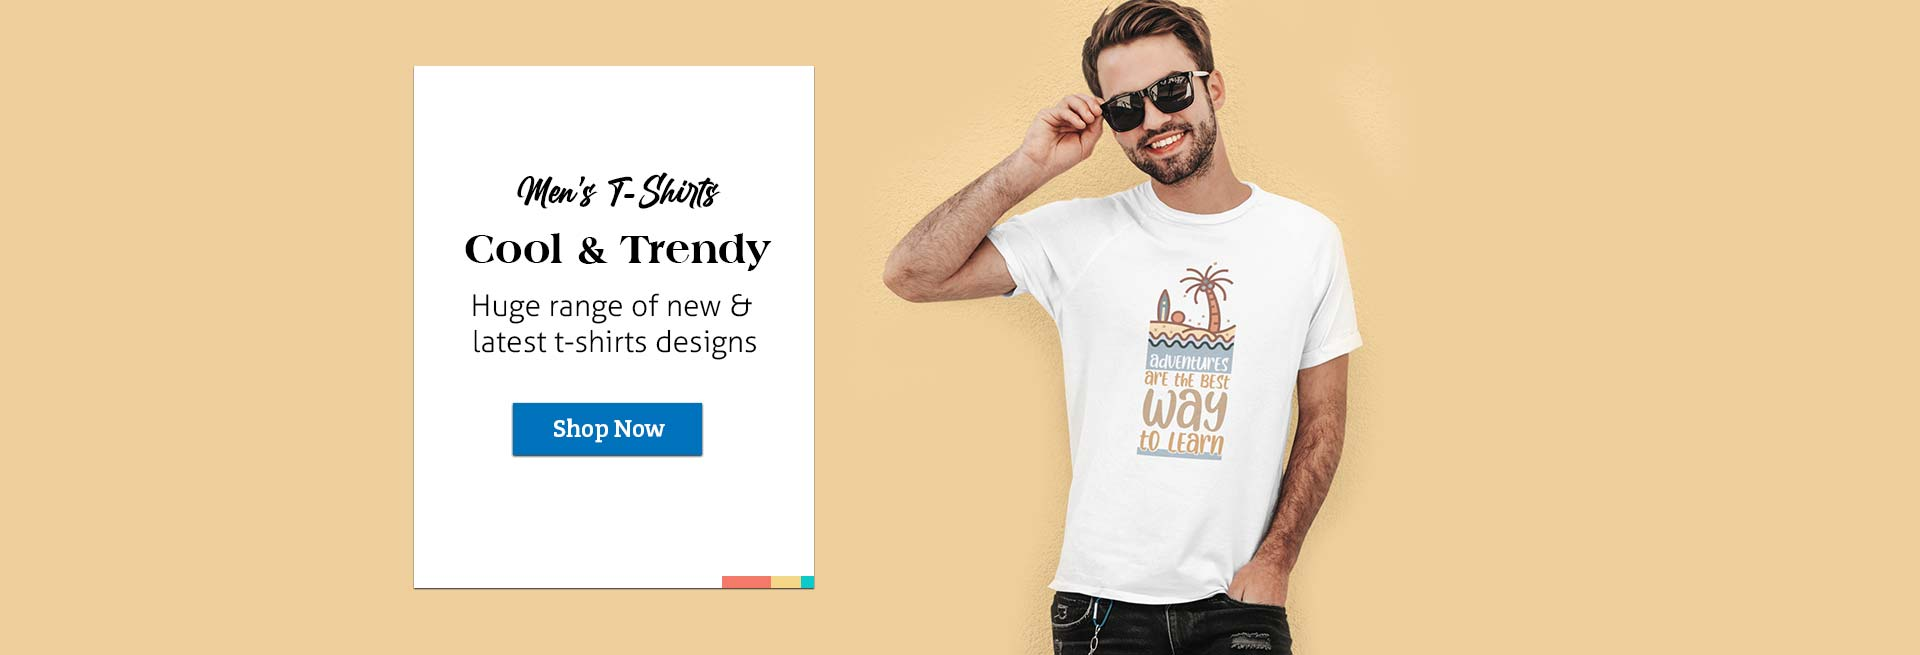 graphic-t-shirts-for-men